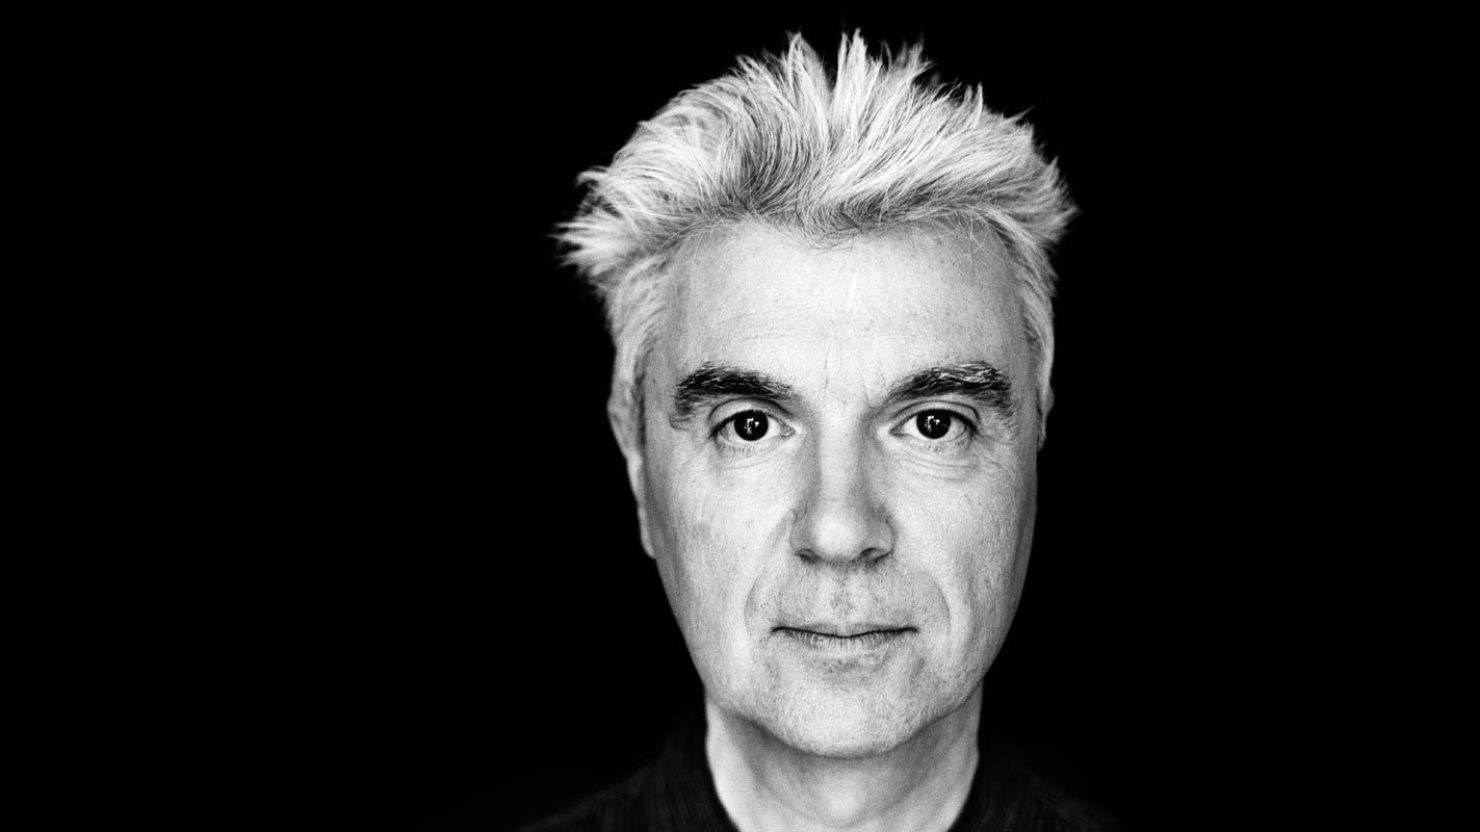 David Byrne Reveals New Album Out Next Year, Collaborations With Brian Eno And Oneohtrix Point Never, Tour Plans